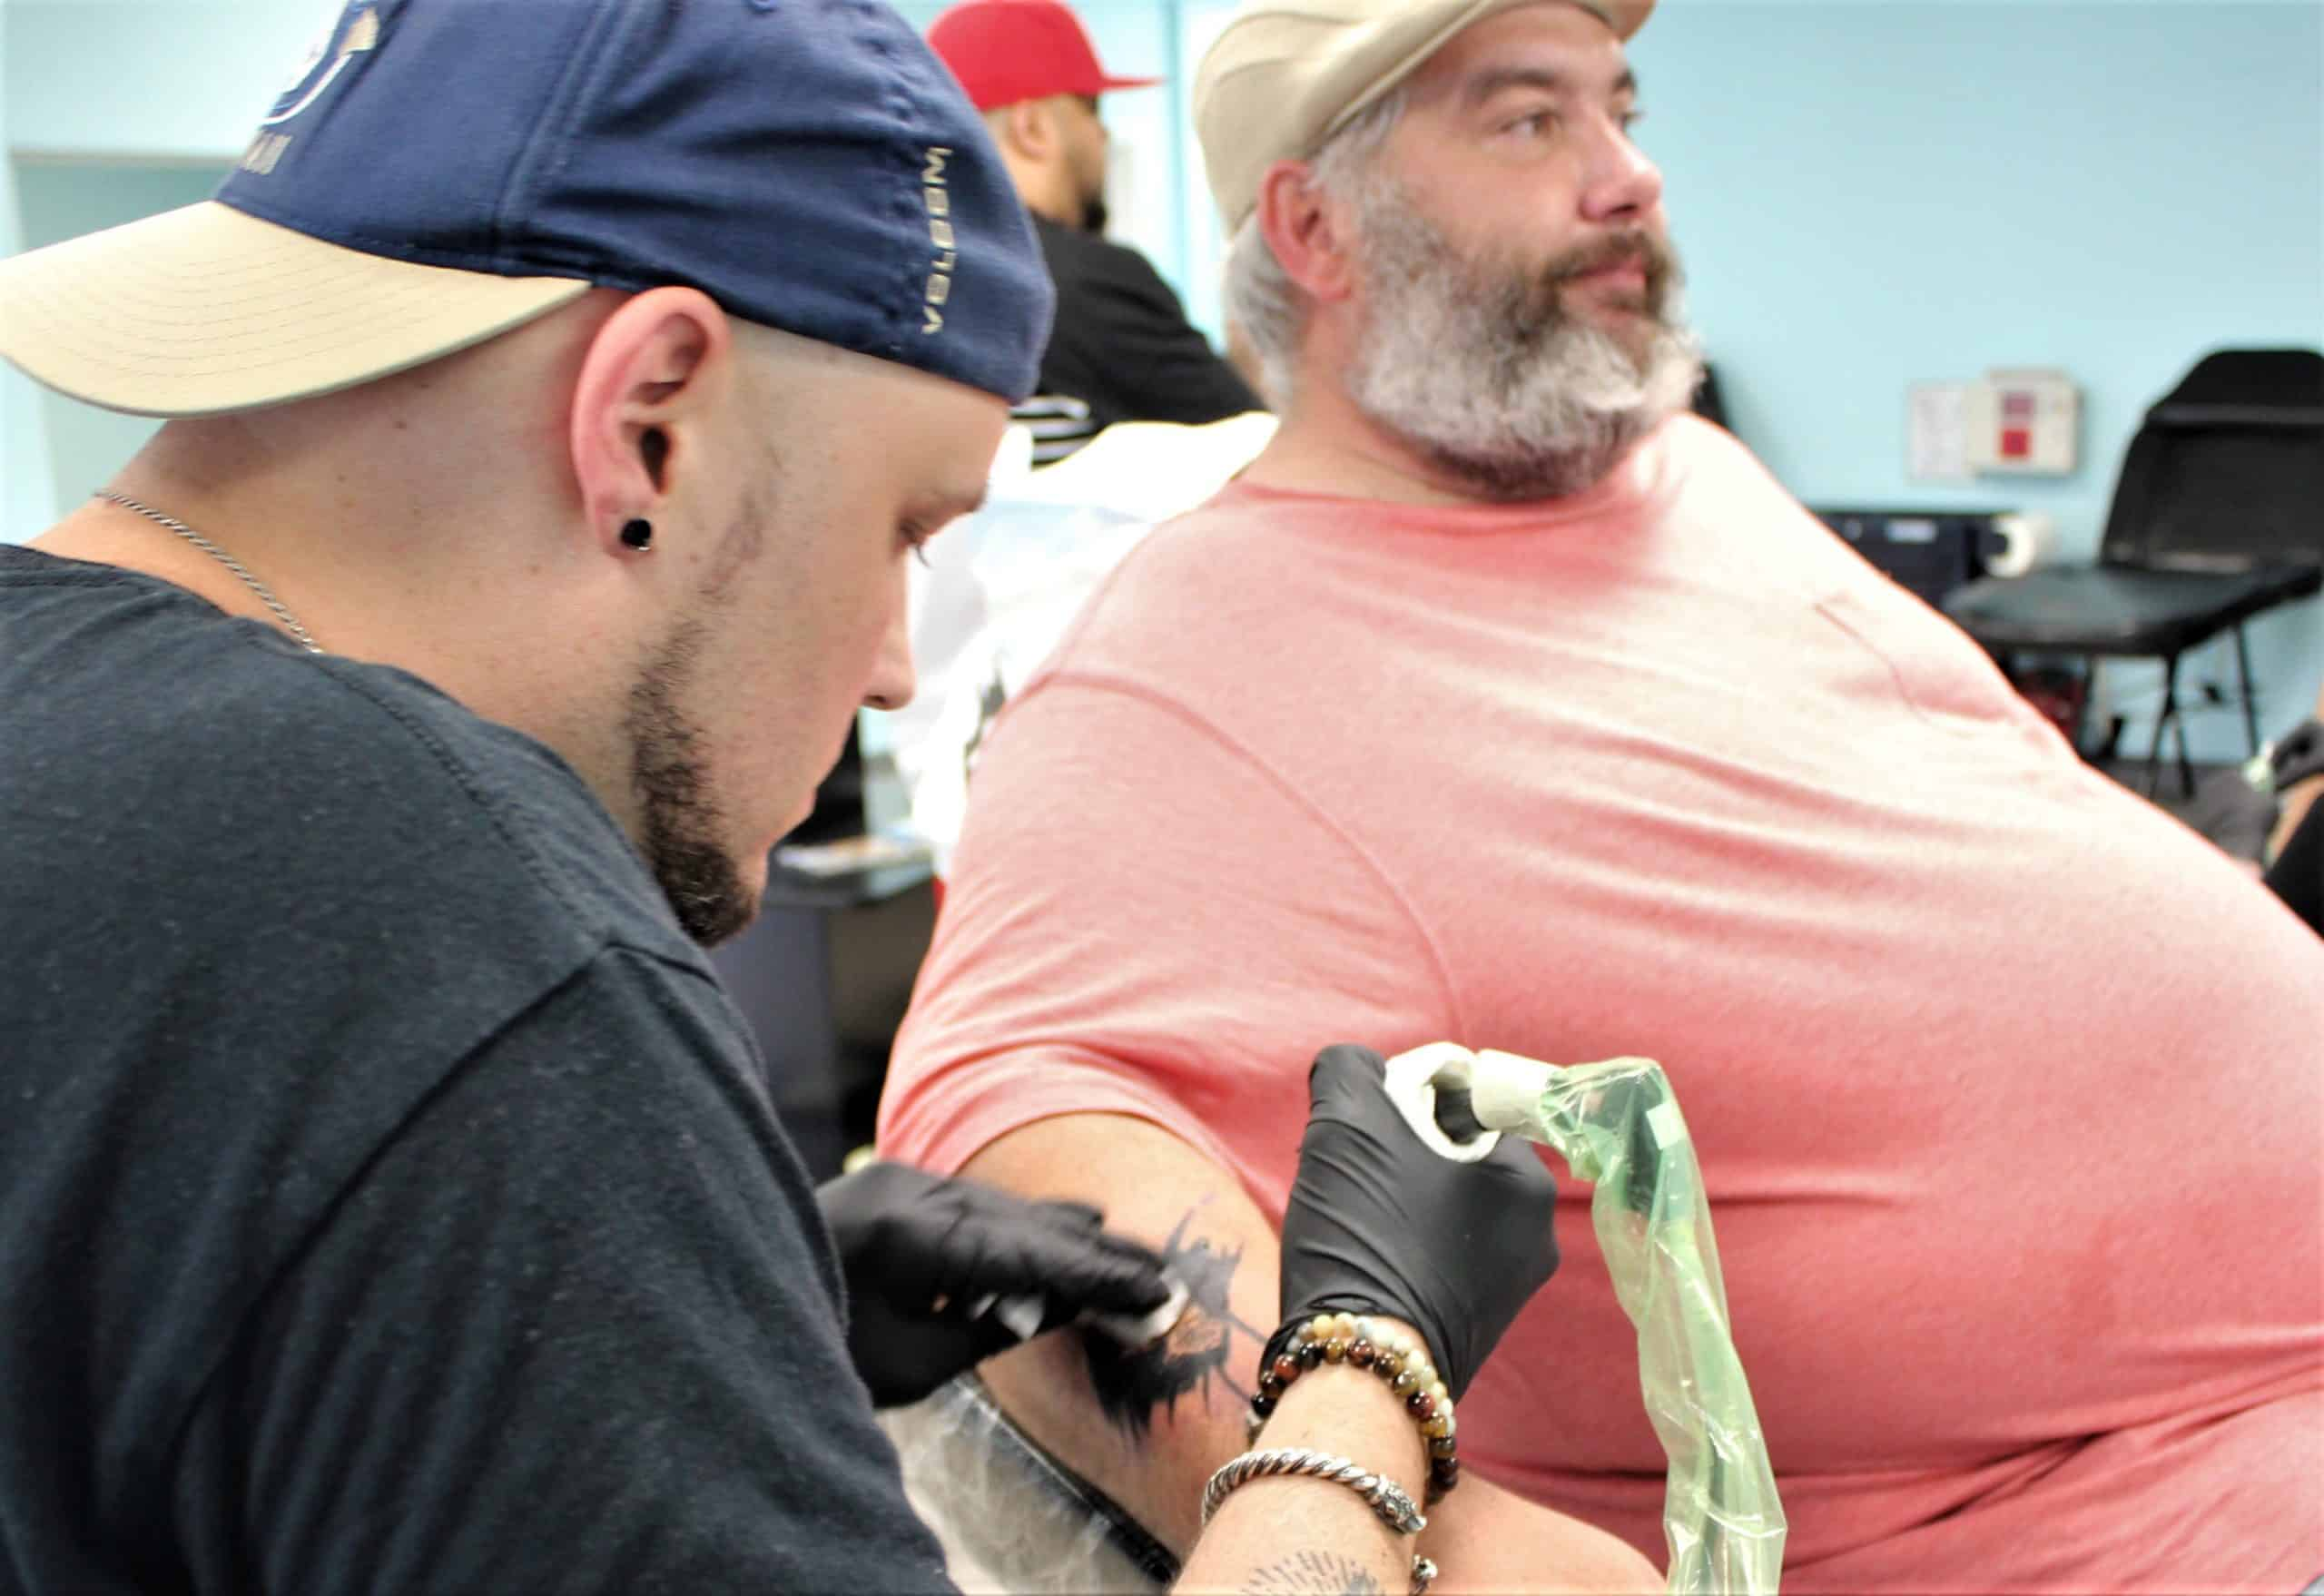 student tattooing arm